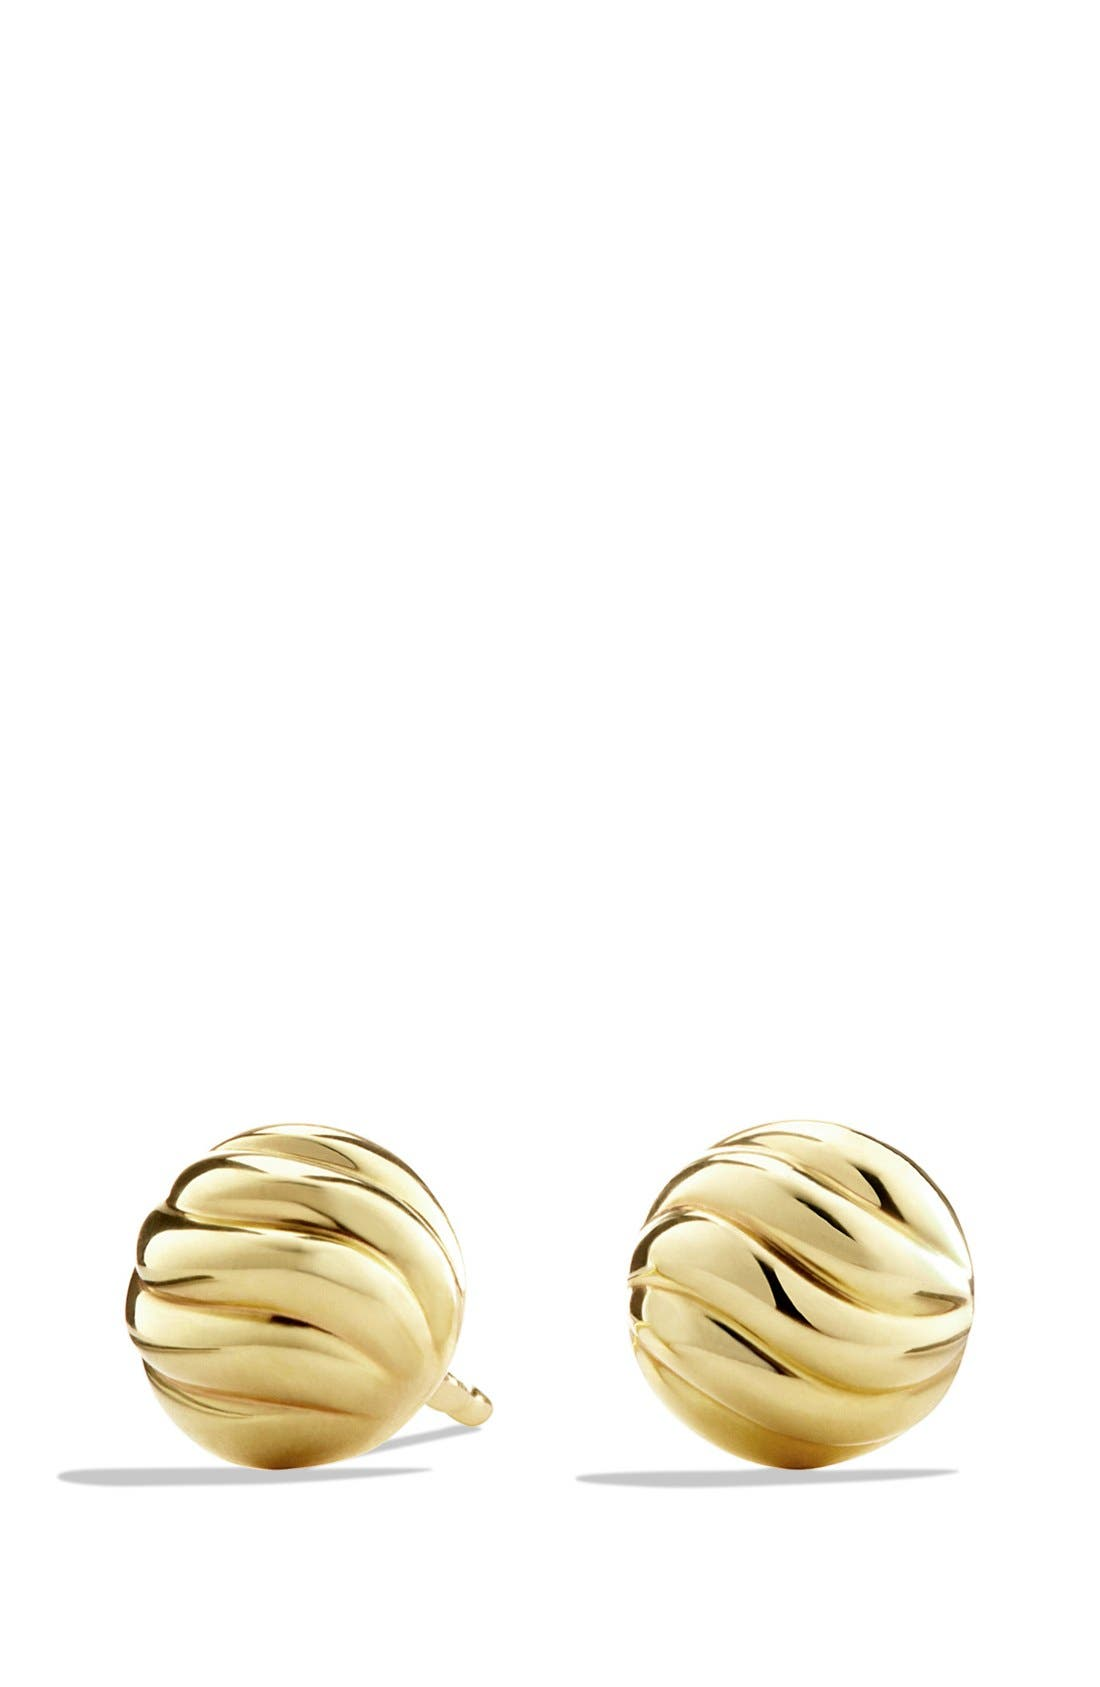 Main Image - David Yurman 'Sculpted Cable' Stud Earring in Gold